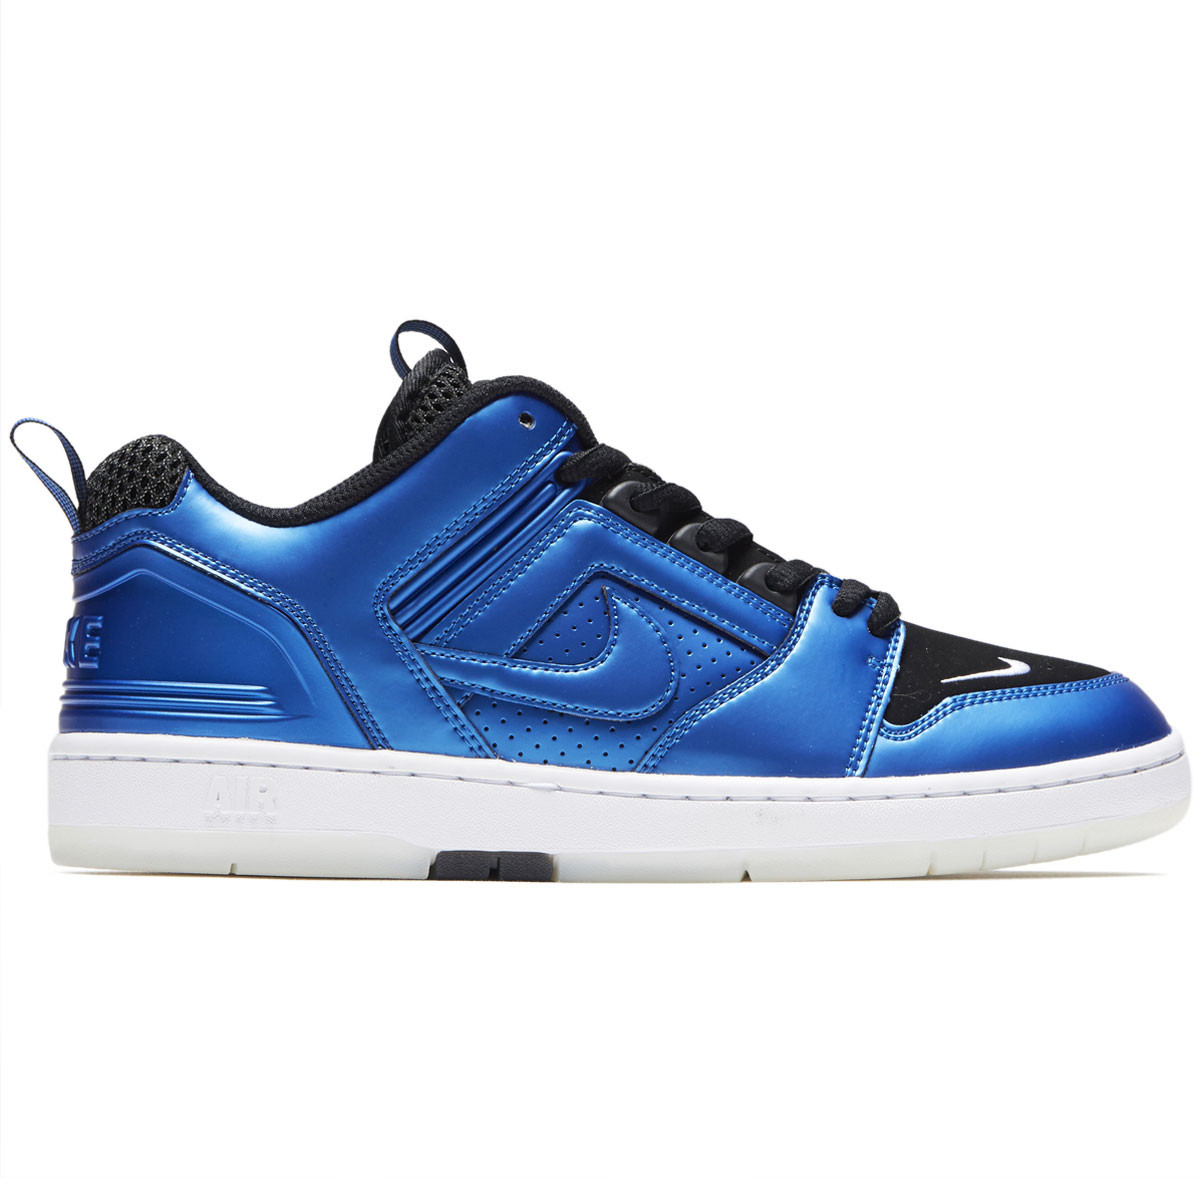 various colors 0ba10 fcc95 Nike SB Air Force II Low QS Shoes - Intl Blue Intl Blue Black